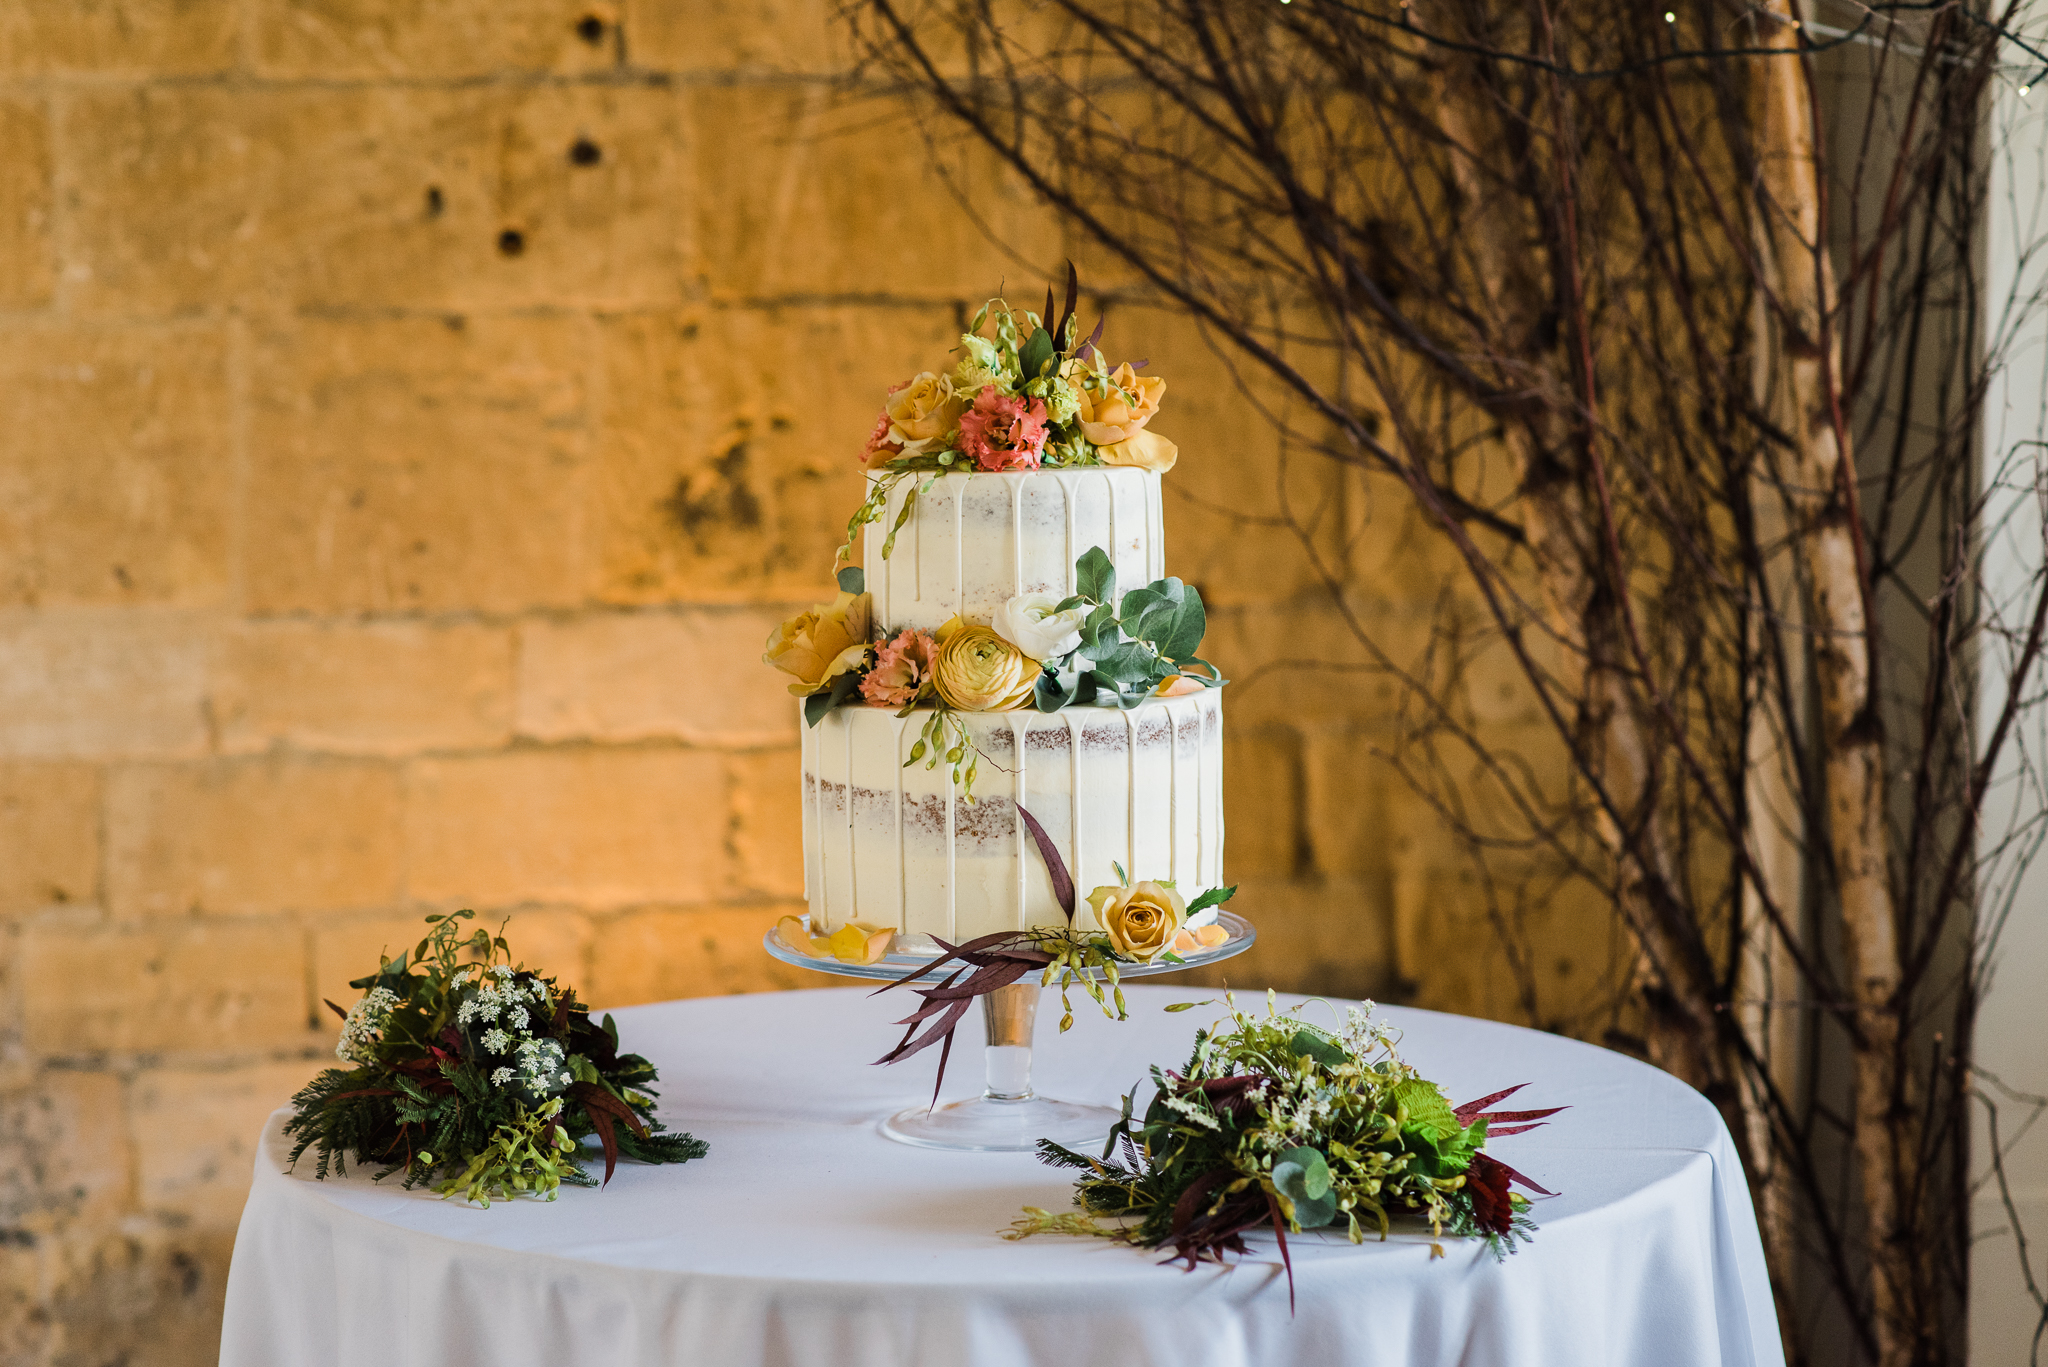 Wedding cake at Lapstone Barn wedding